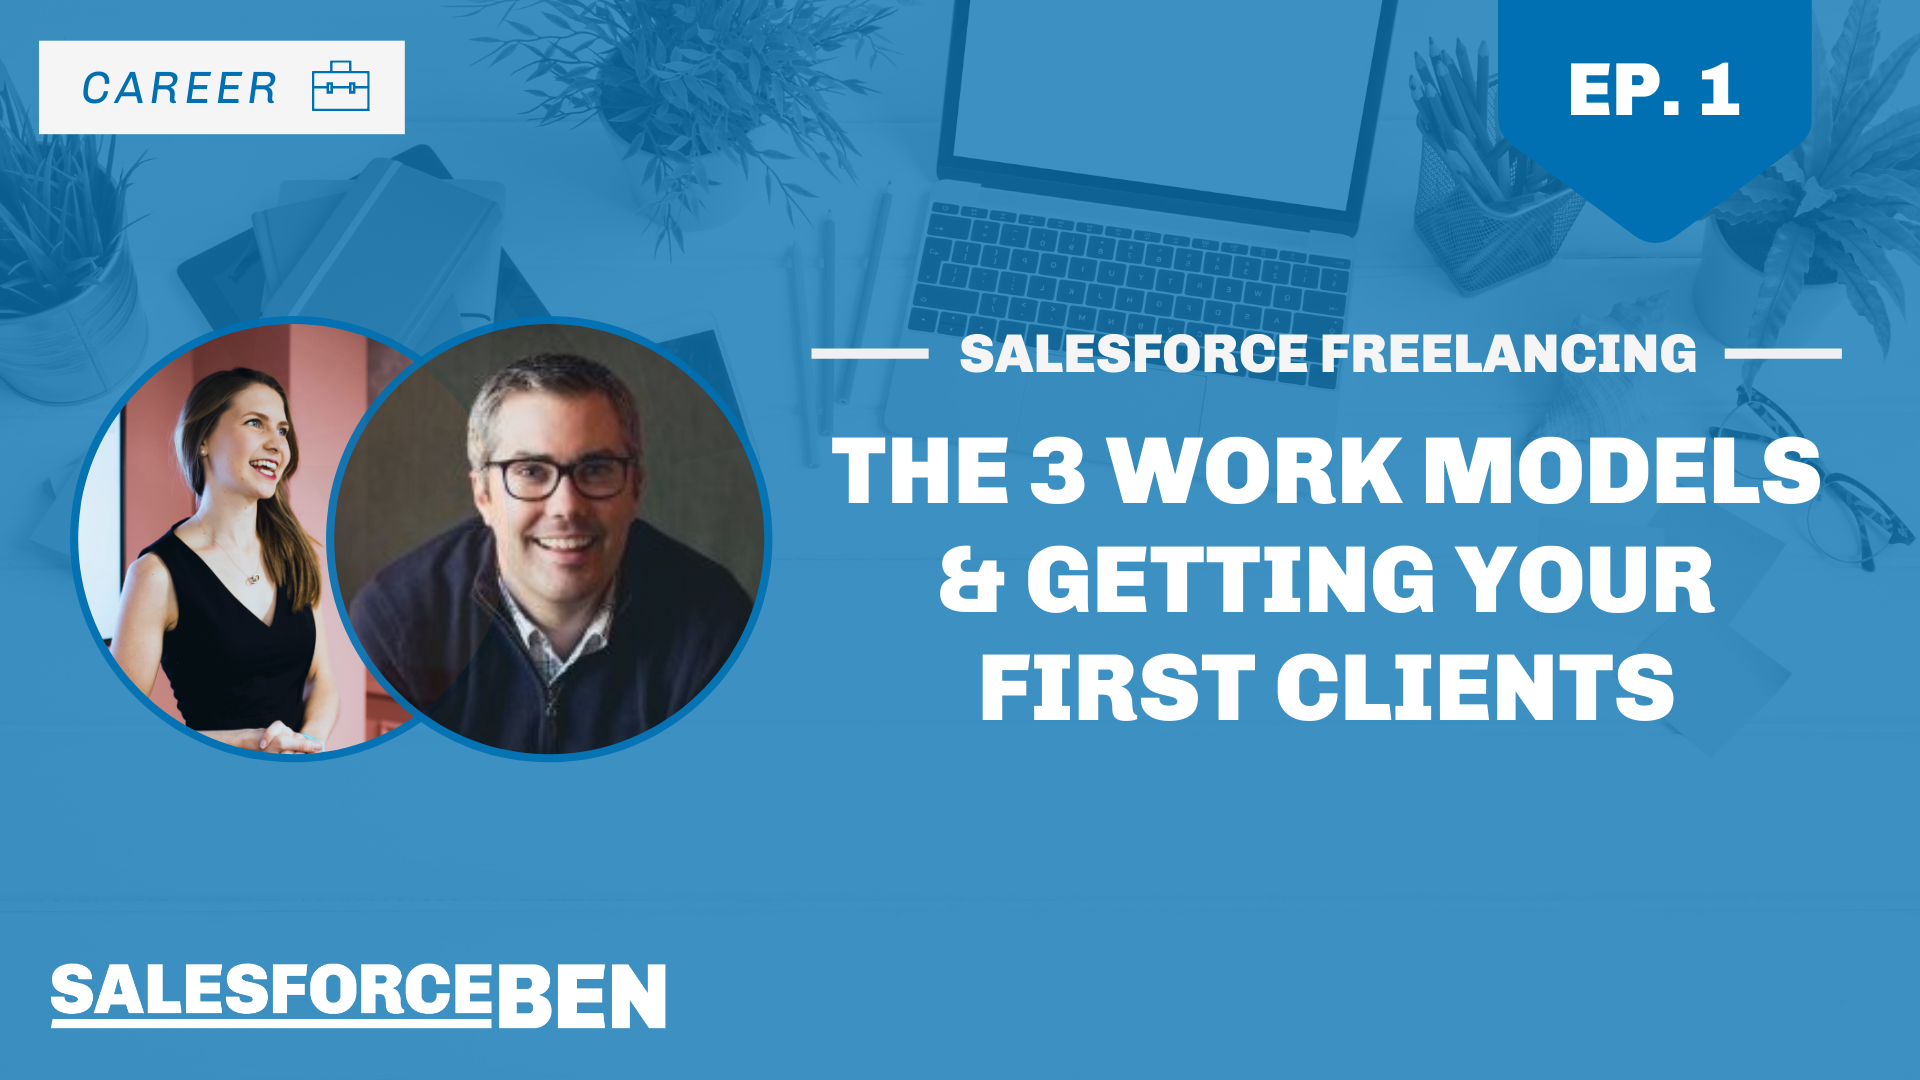 Salesforce Freelancing: The 3 Work Models & Getting Your First Clients (Ep. 1)